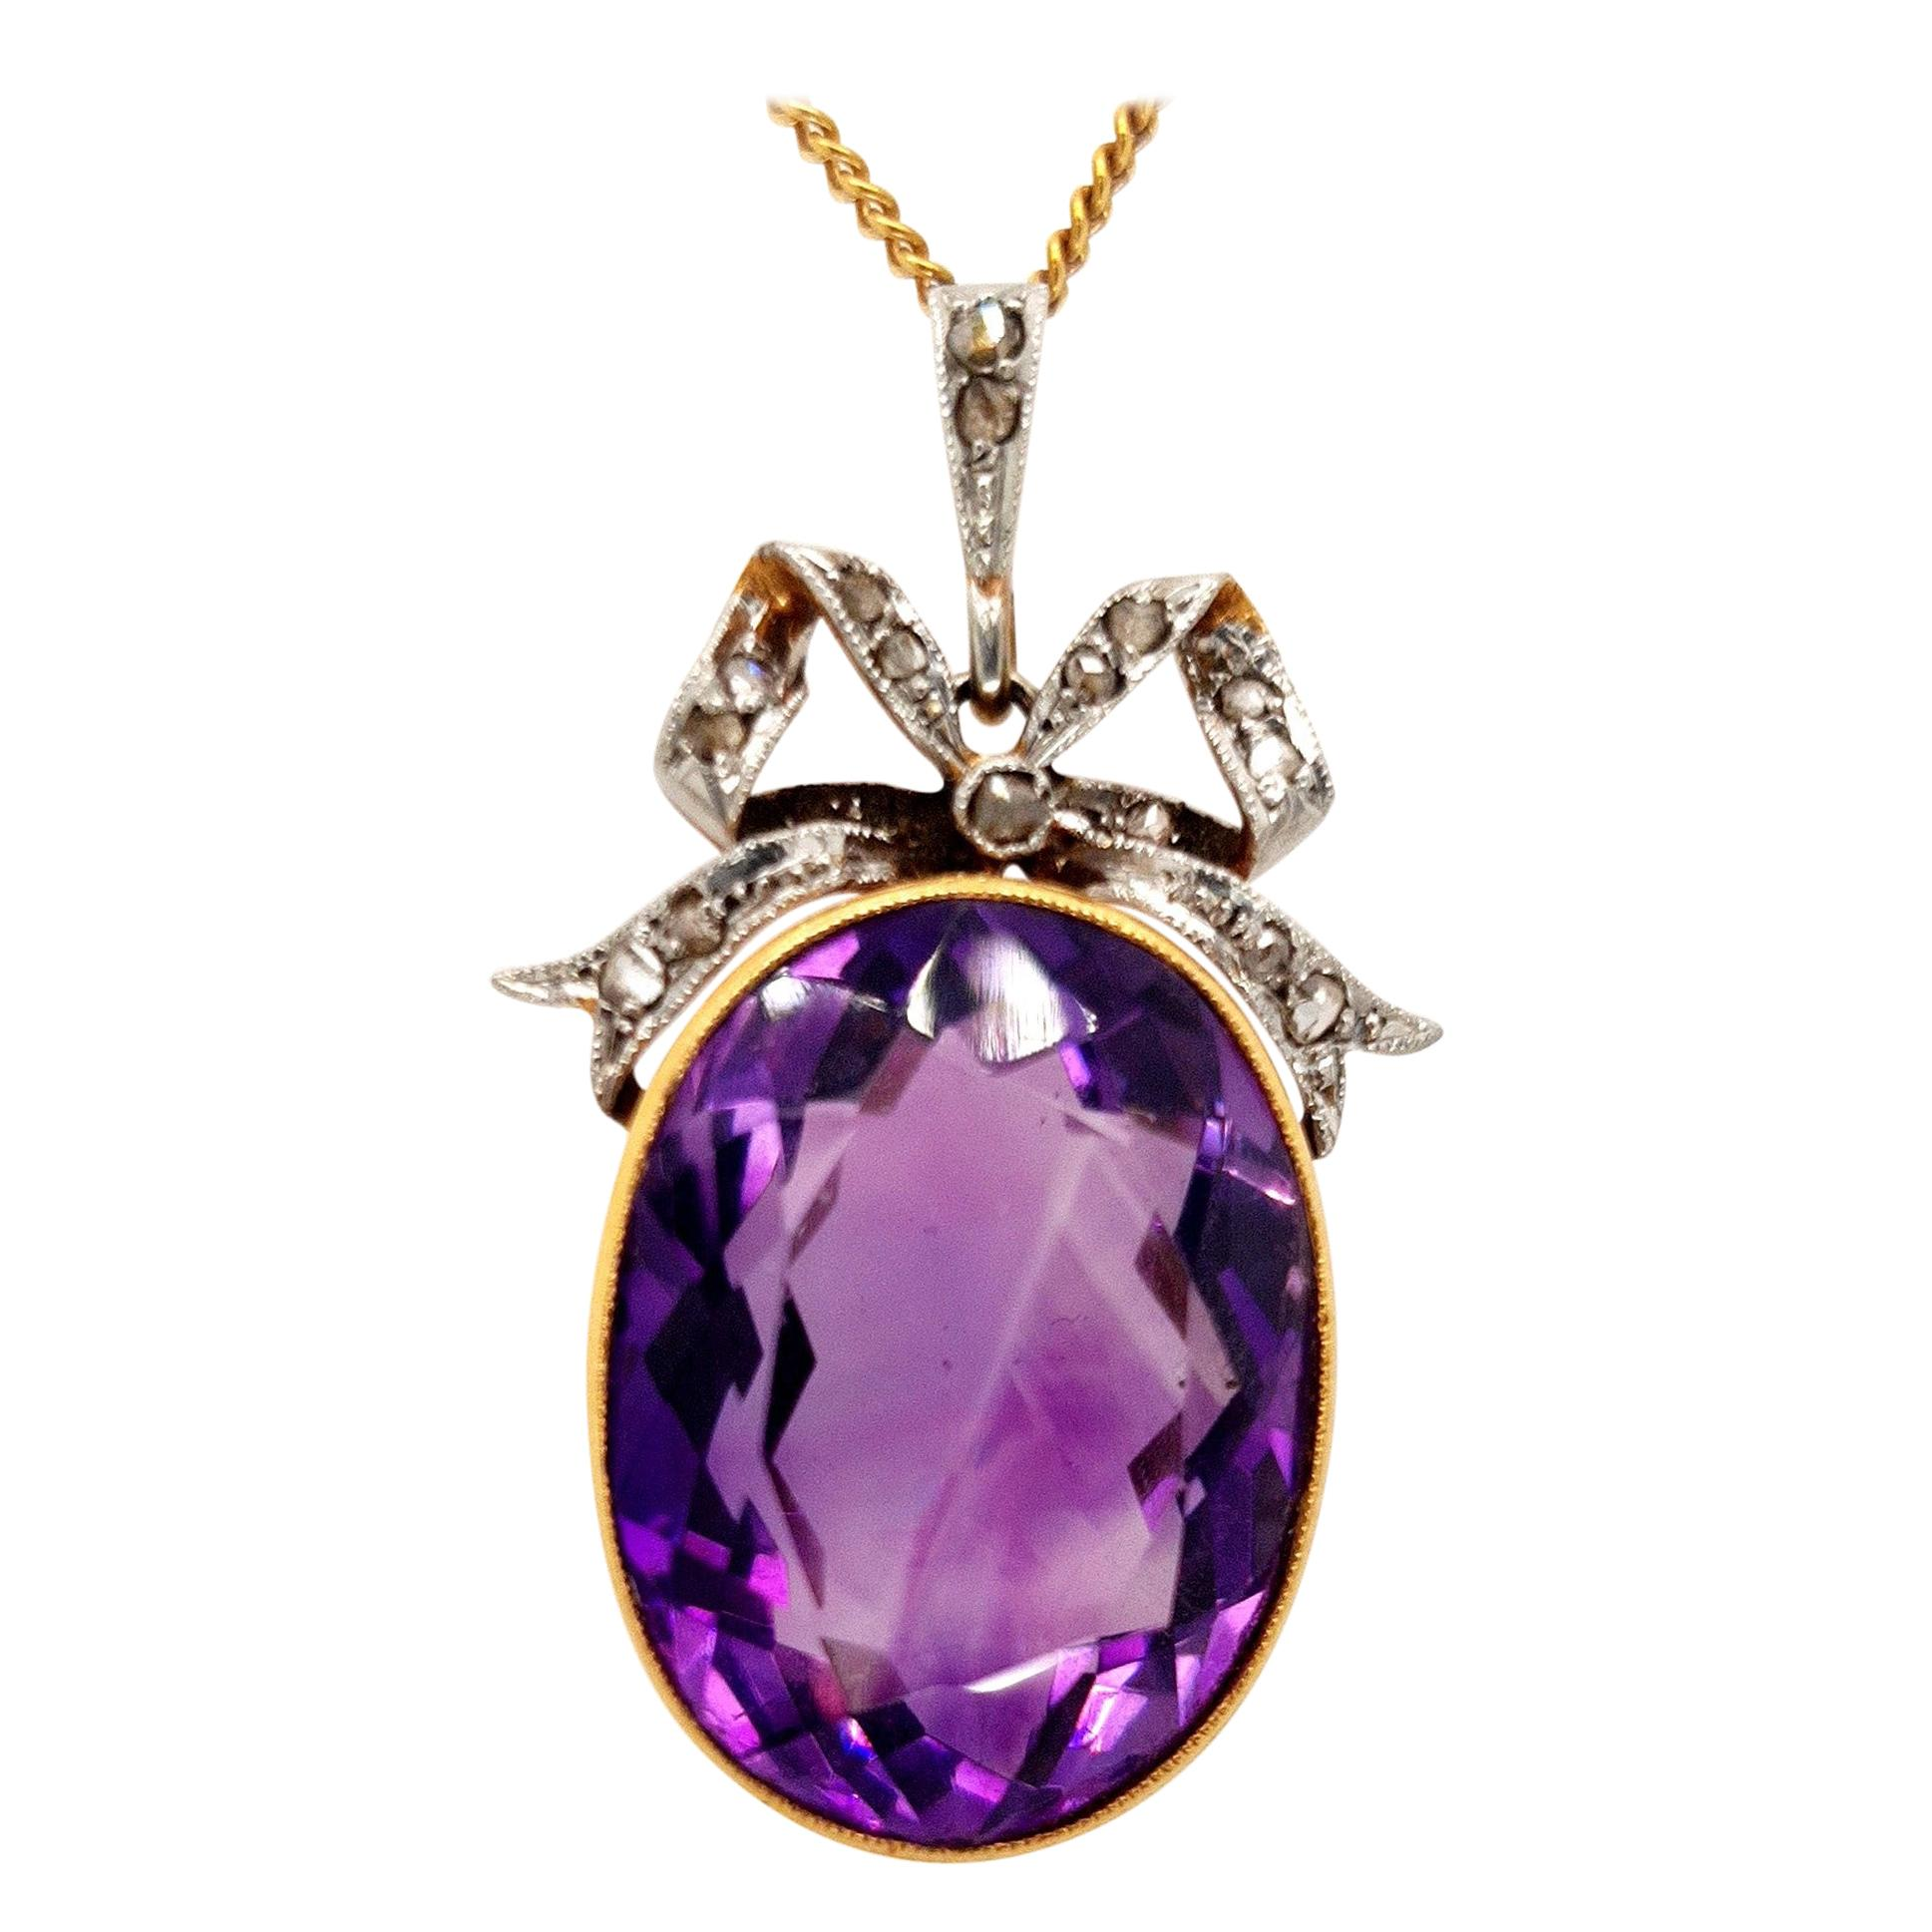 Vintage Yellow Gold Pendant Necklace with Amethyst and Rose Cut Diamonds